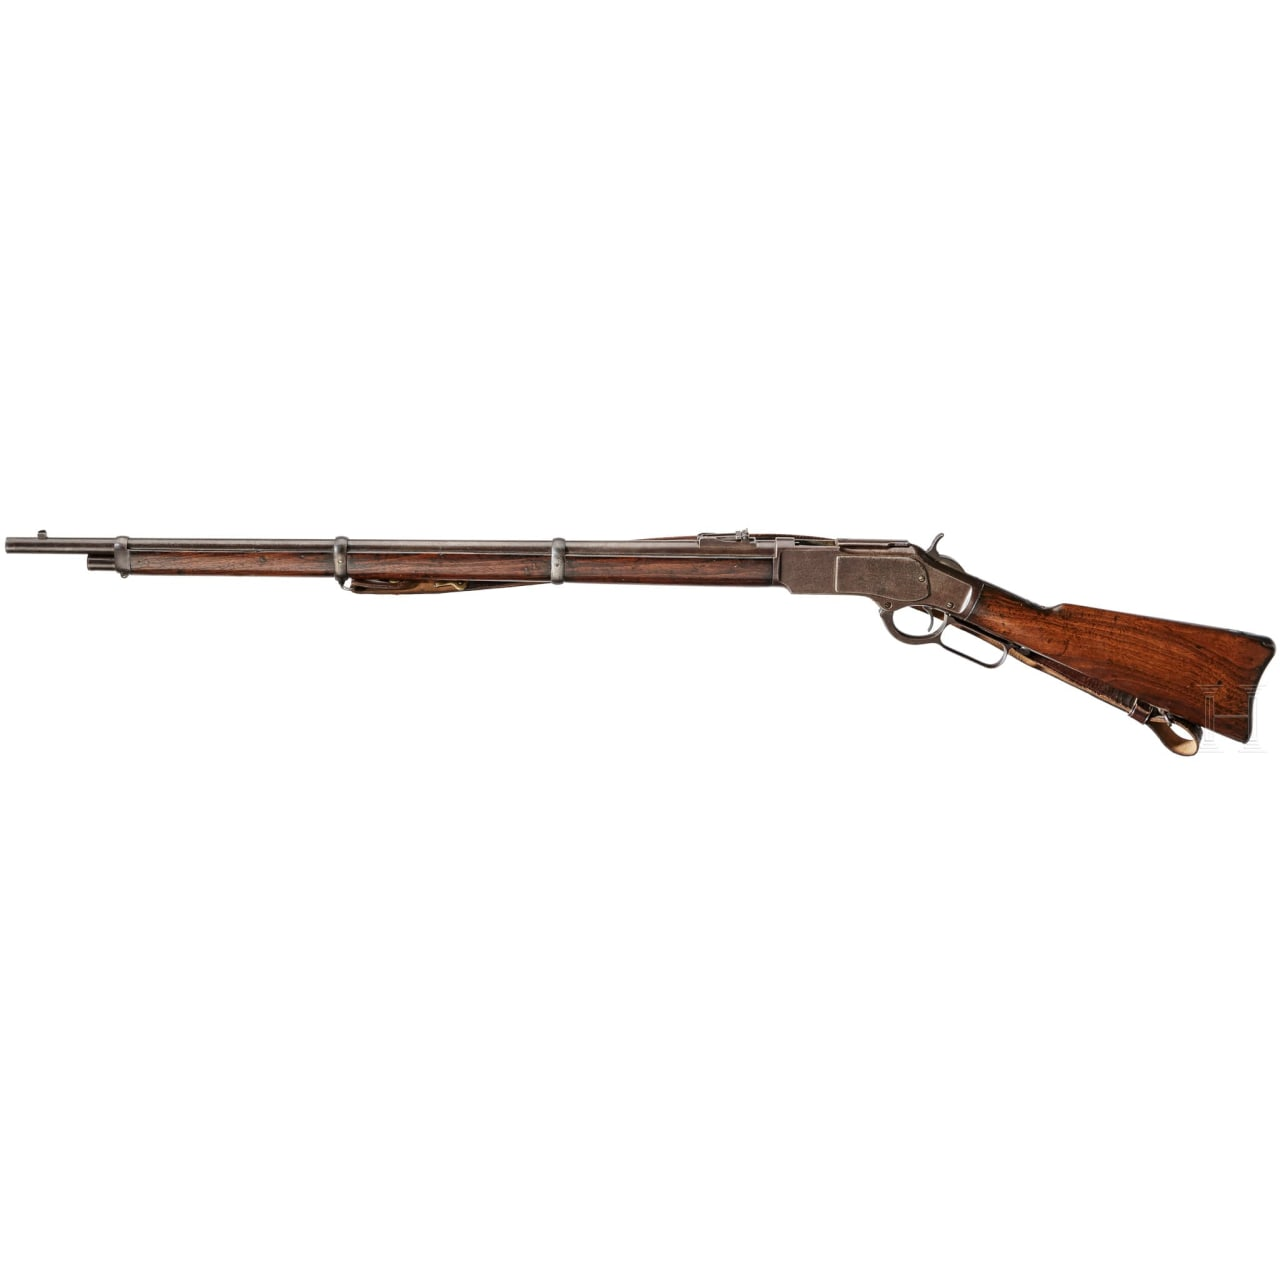 A Winchester Model 1873 Musket